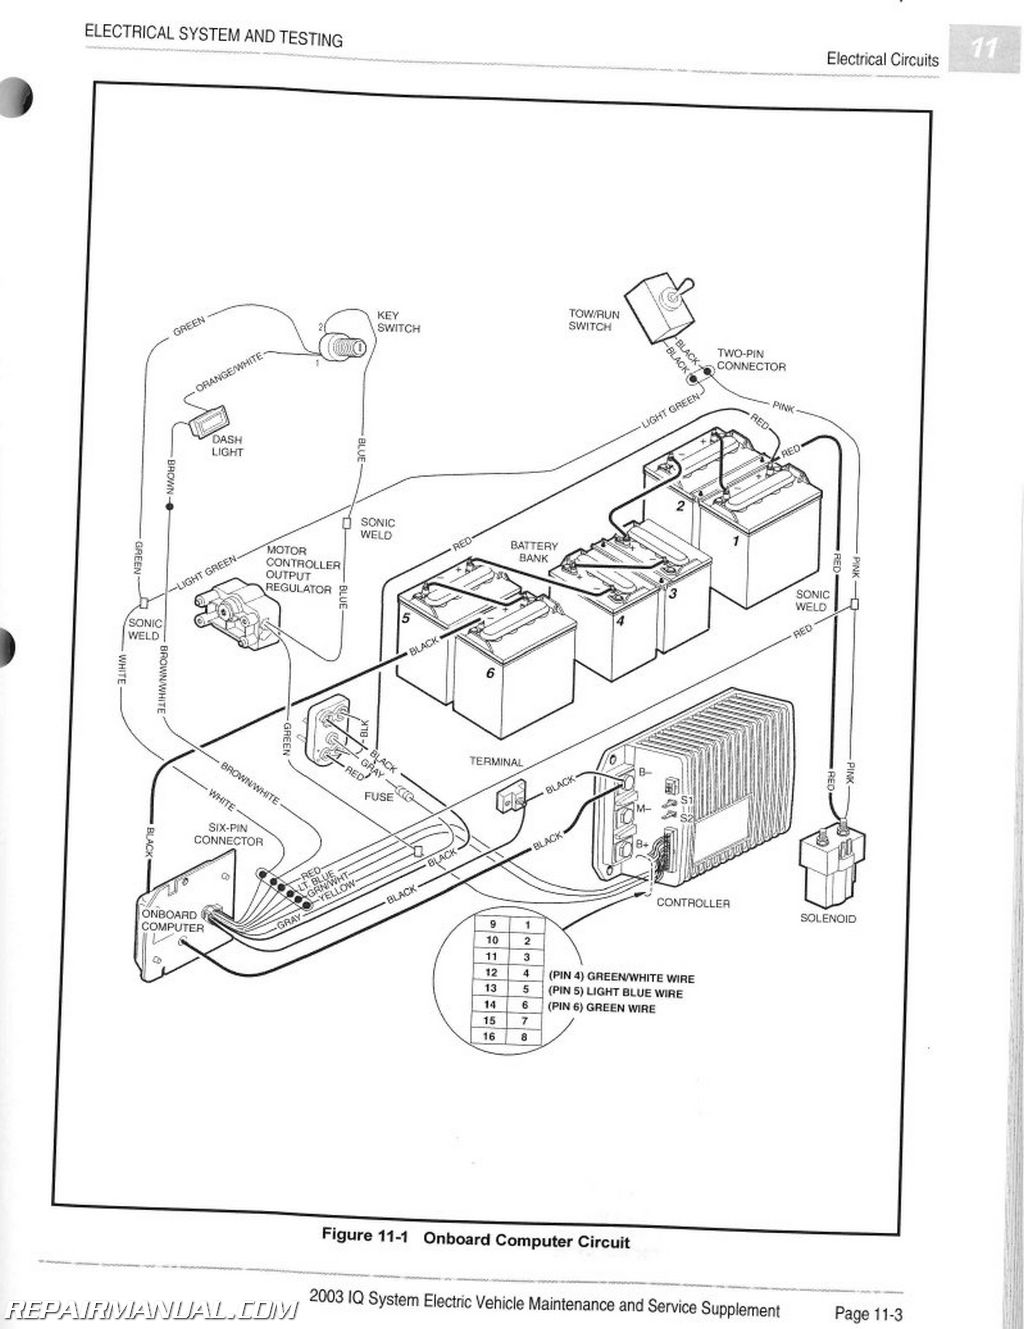 2003 Club Car IQ System Maintenance And Service Manual Supplement page 1 wiring diagram for 36 volt club car golf cart the wiring diagram 1984 club car wiring diagram at soozxer.org